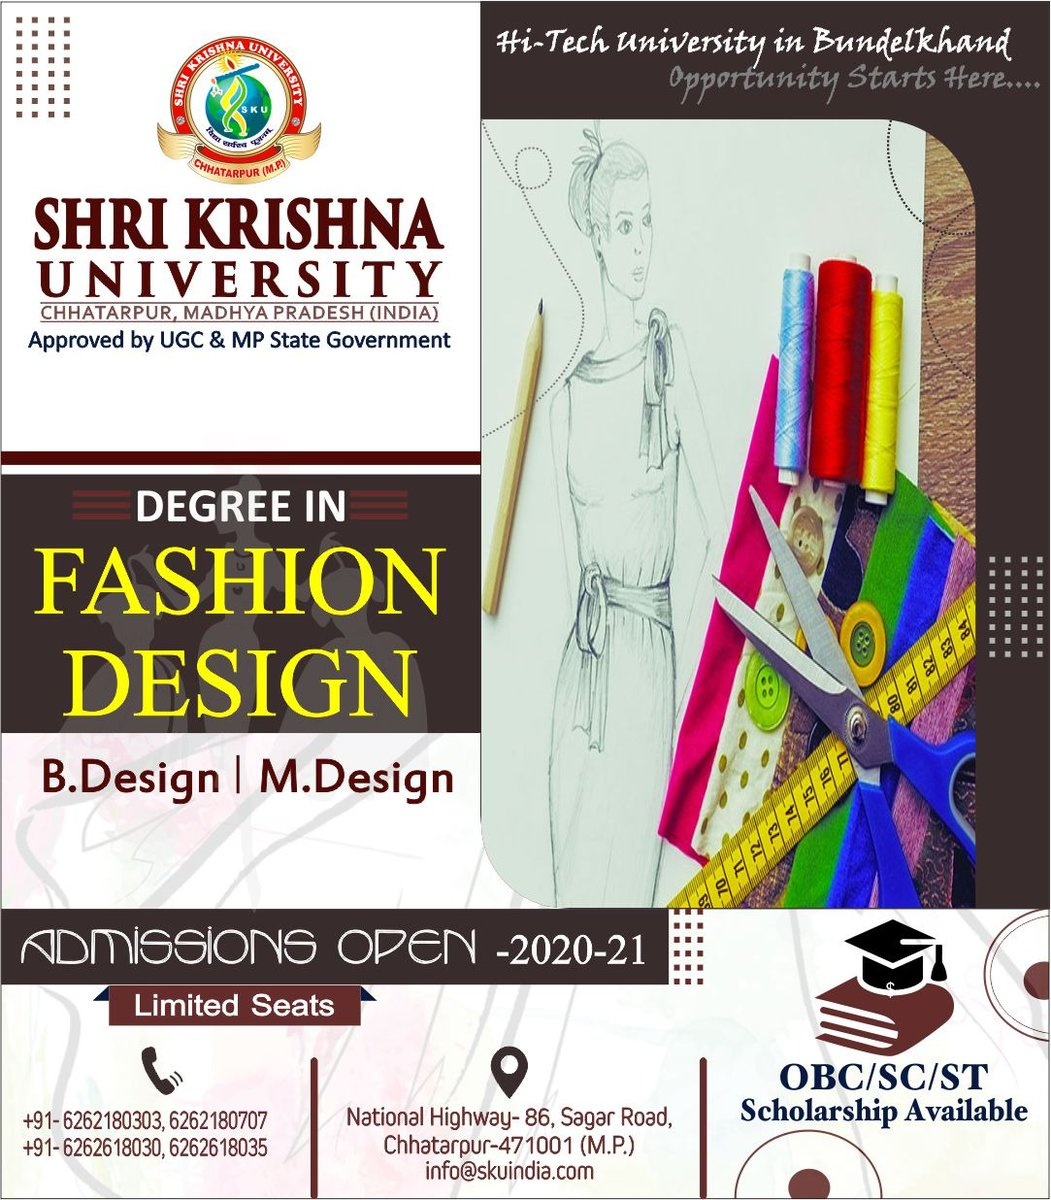 SKU invites applications for admission in #BDesign & #MDesign courses. So, Get ready to uplift your ambition with advanced visions and turn your passion into a successful career. Apply soon!!!  #Admissions #2K20 #SKU #Chhatarpur #MadhyaPradesh #VidyaSarvasvaPoojnam https://t.co/LvNu28l2JR